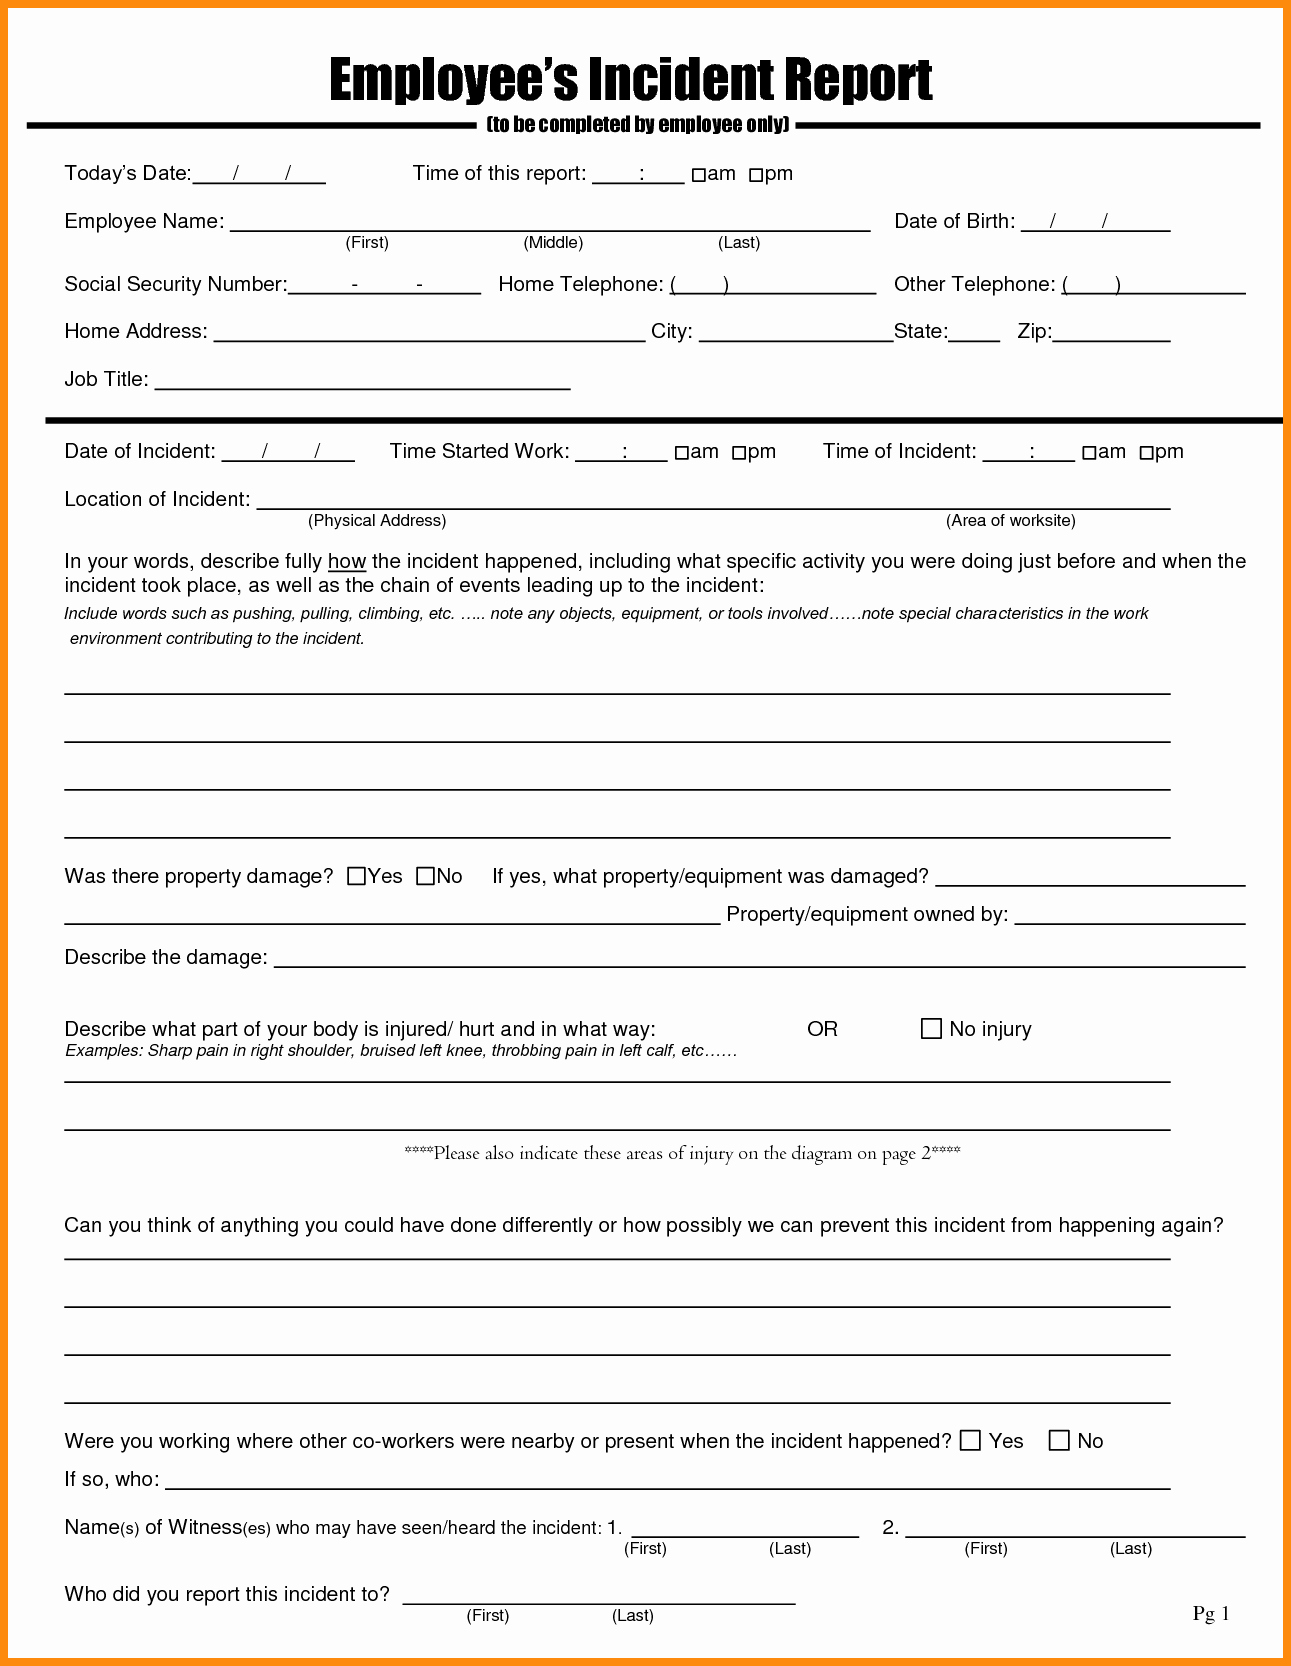 Employee Incident Report Template Beautiful Template